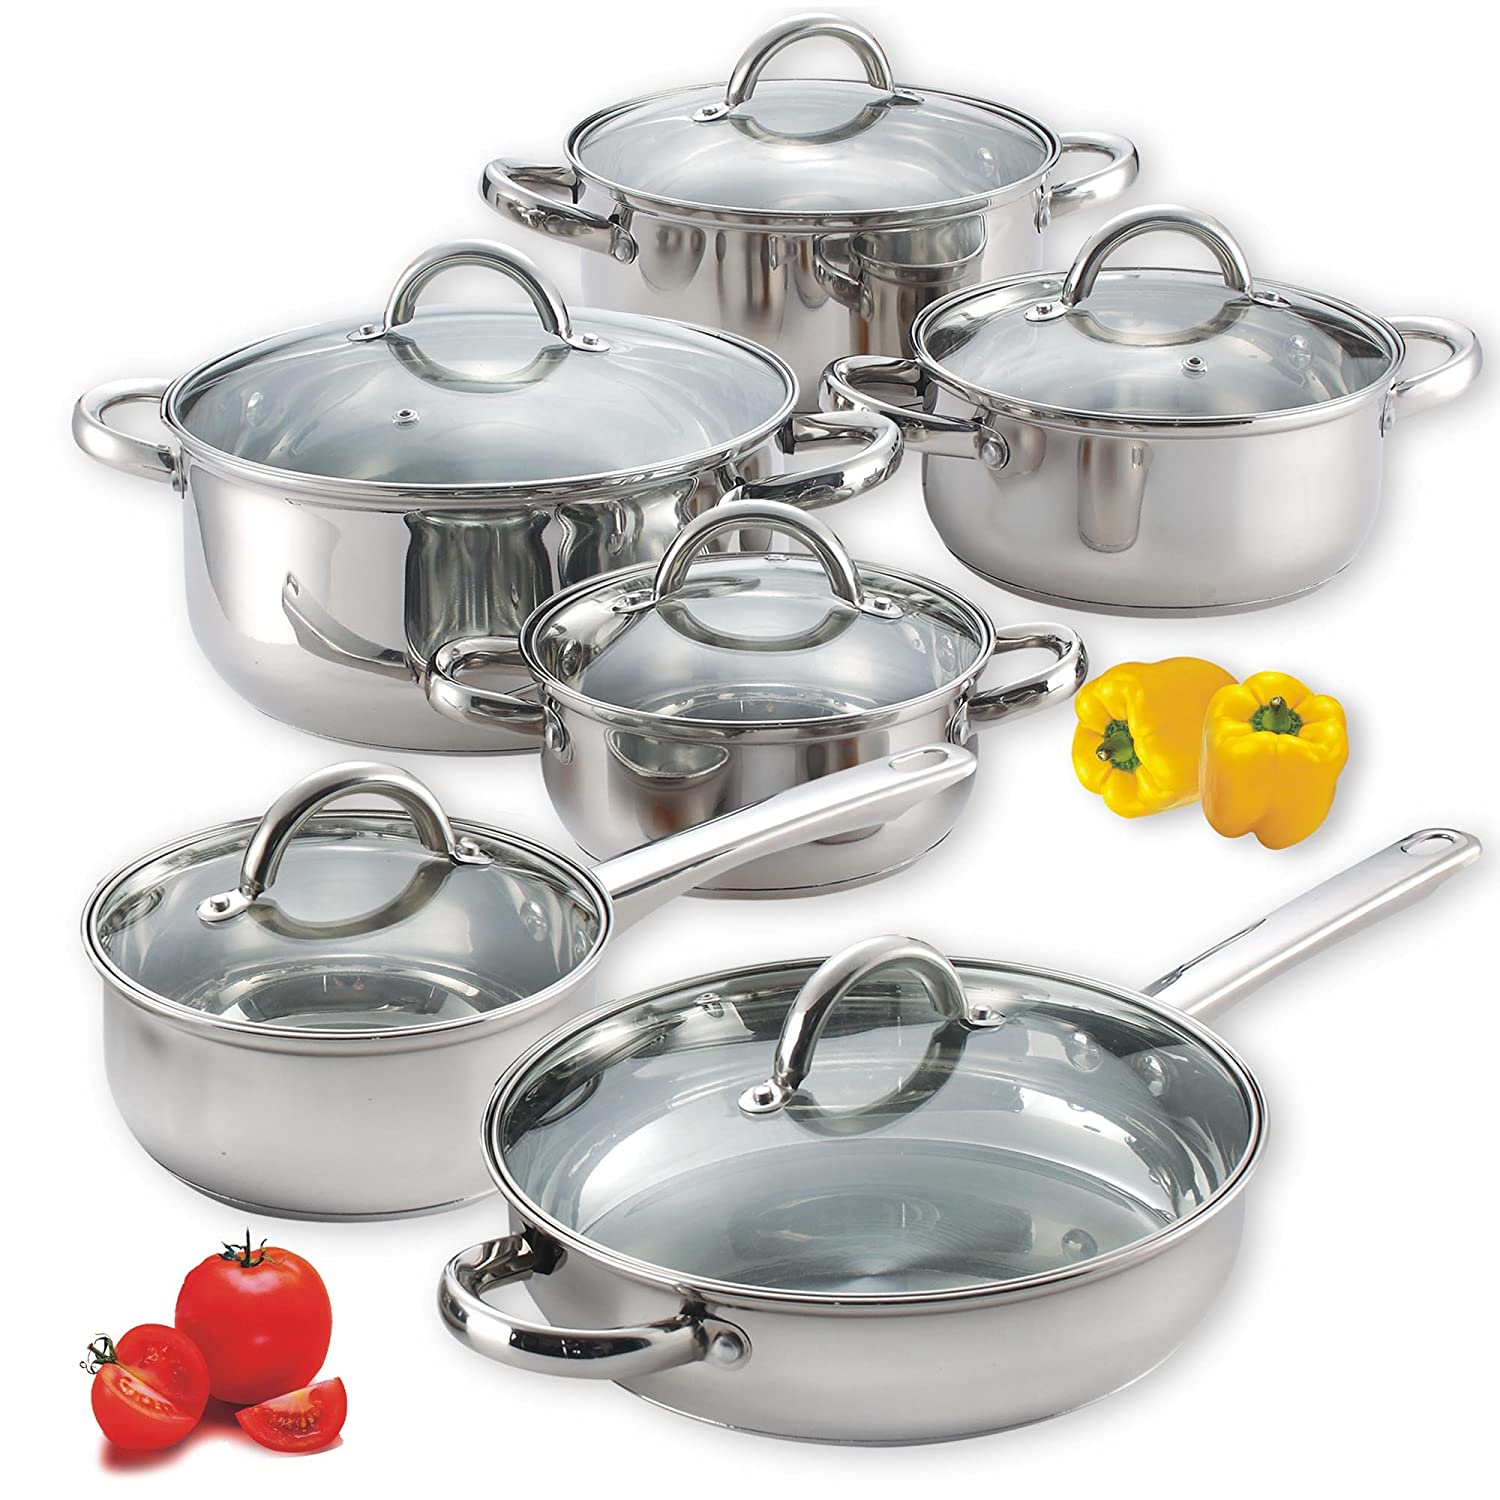 Cook N Home 12-Piece Stainless Steel Cookware Set | amazon.com